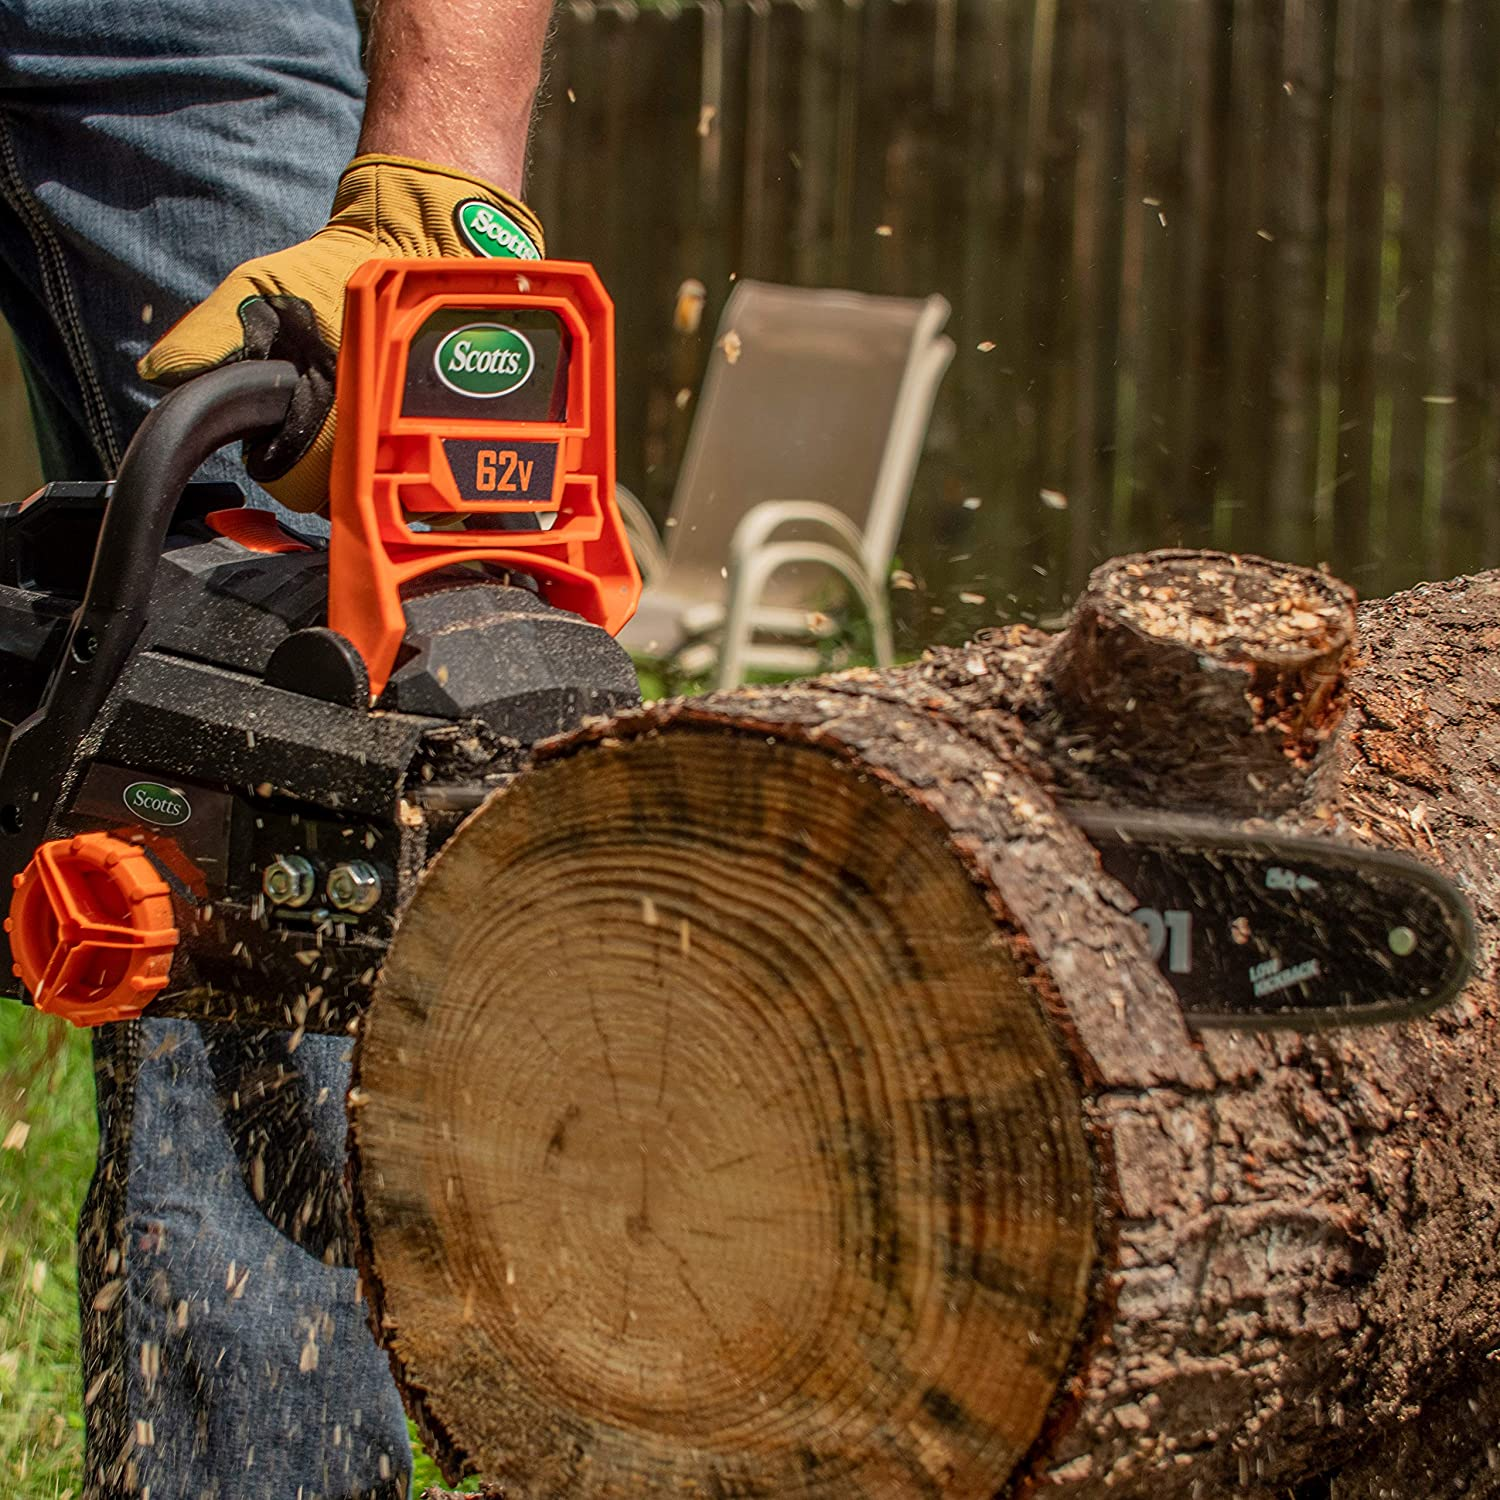 Scotts Outdoor Power Tools LCS31662S Chainsaws product image 6